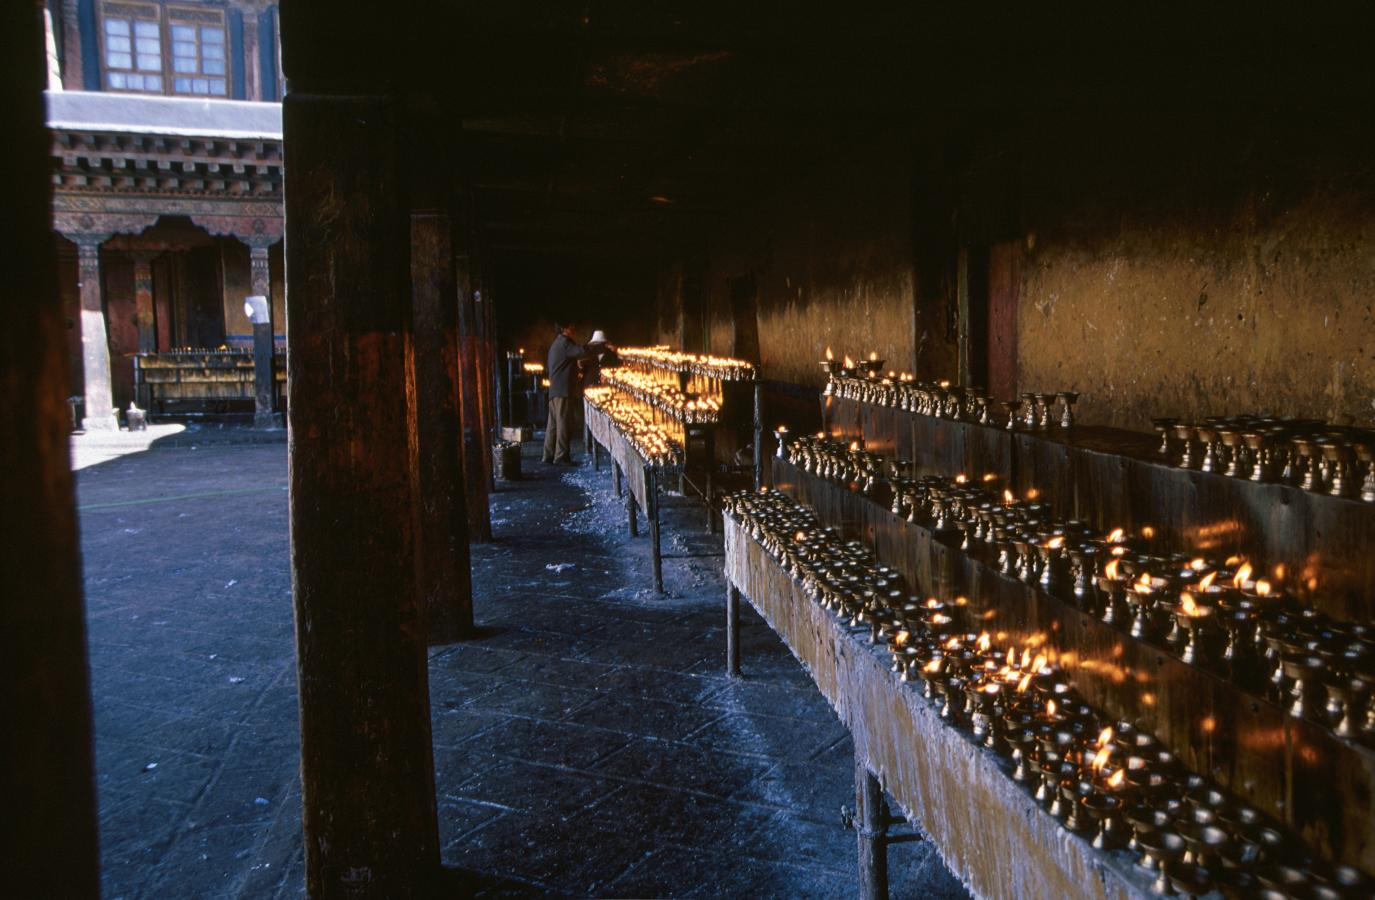 inside-the-jokhang-temple-lhasa-tibet-2000